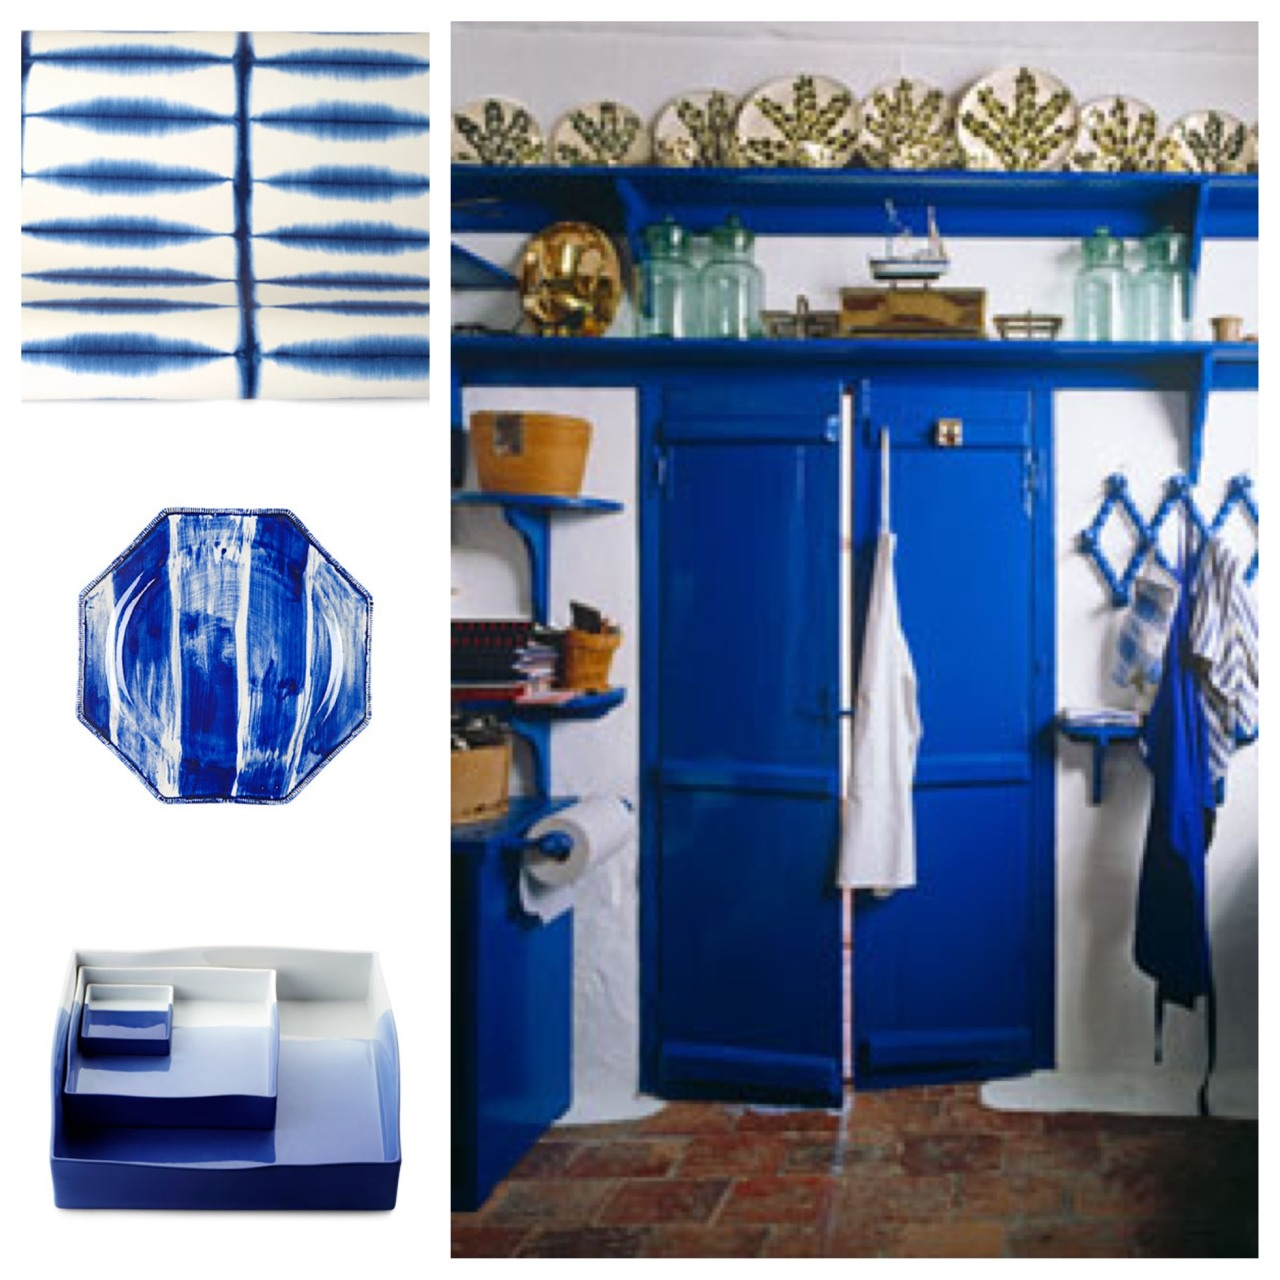 Cobalt Blue Obsession. From plates to doors you can add a little blue anywhere. It brightens up any room with a few accents and also gives a newness that commands attention.